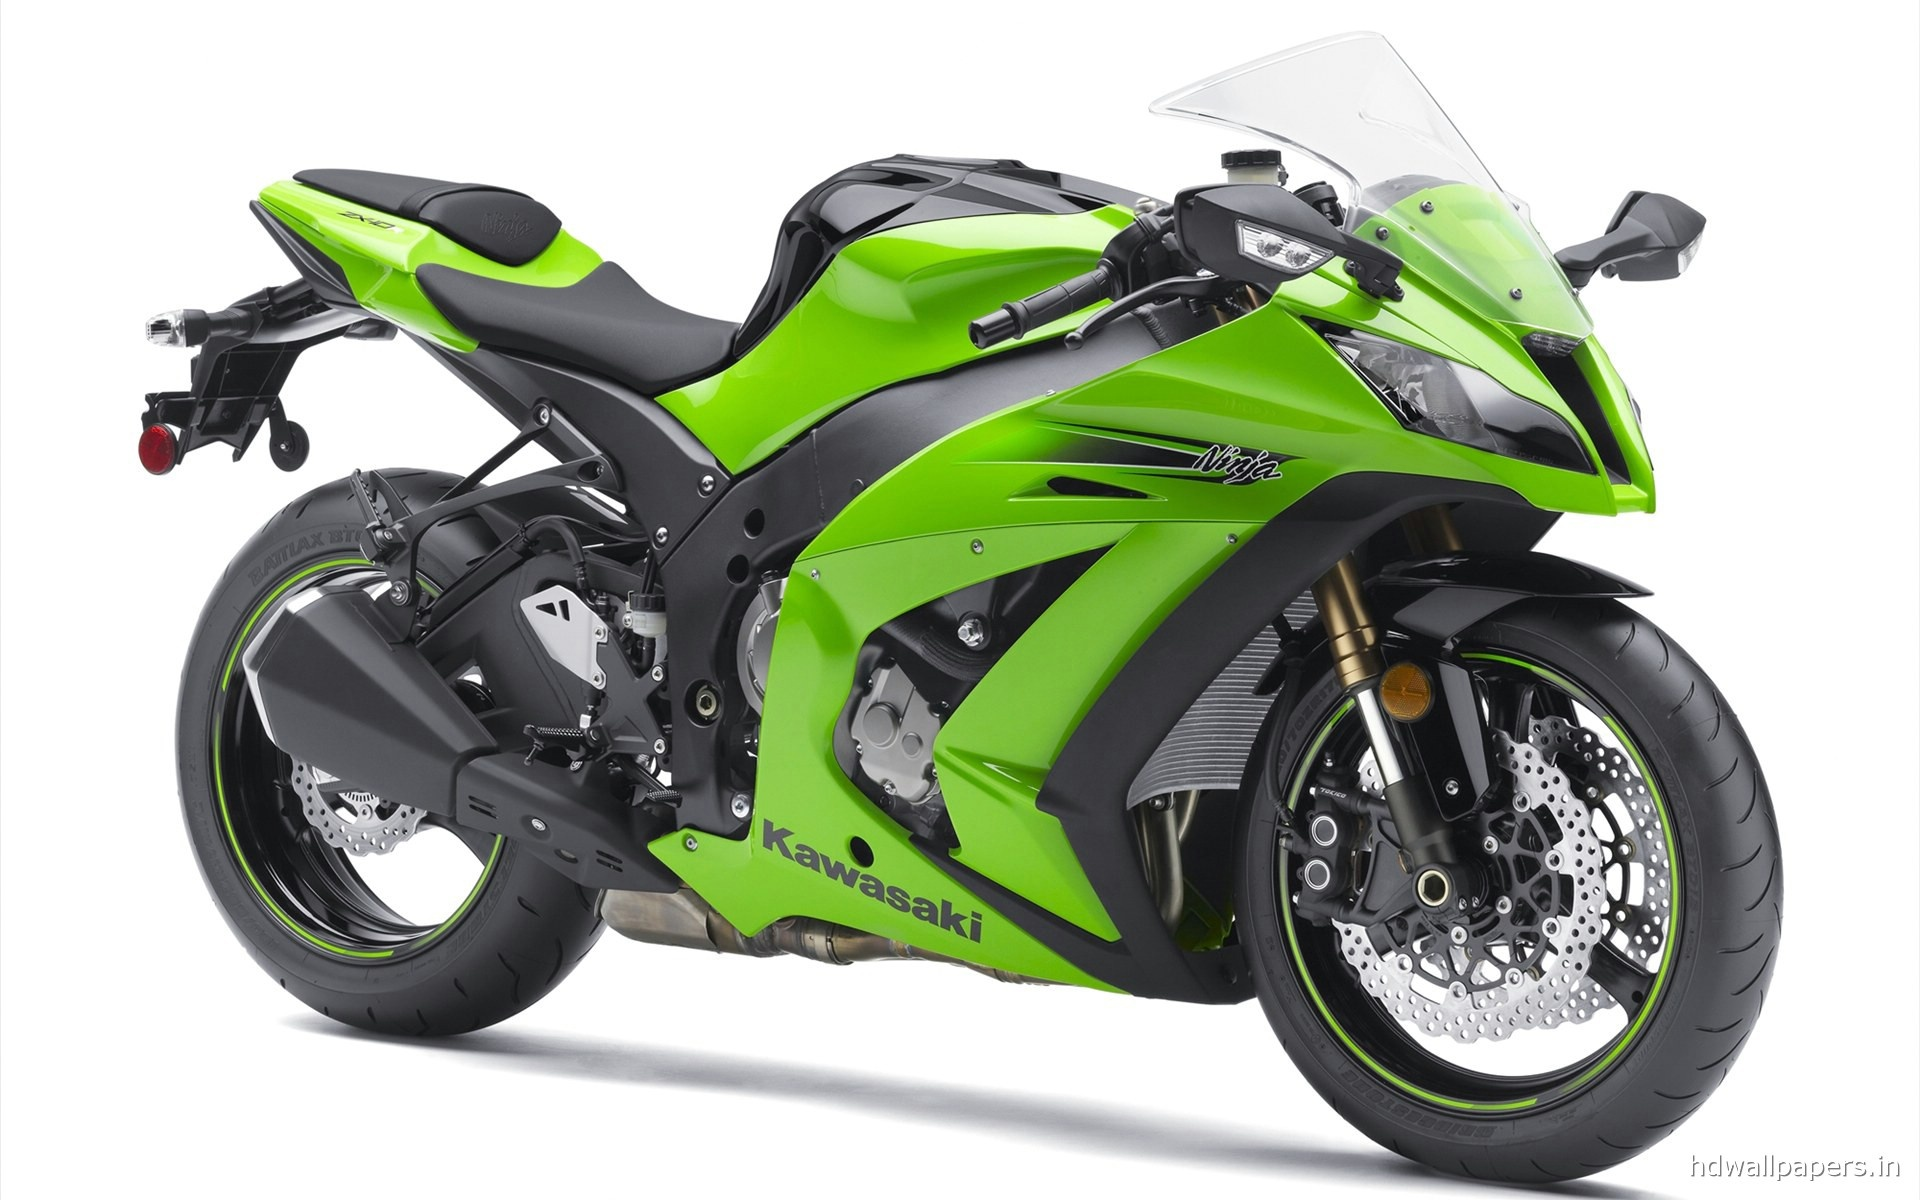 2011 Kawasaki Ninja ZX10R Wallpapers In Jpg Format For Free Download